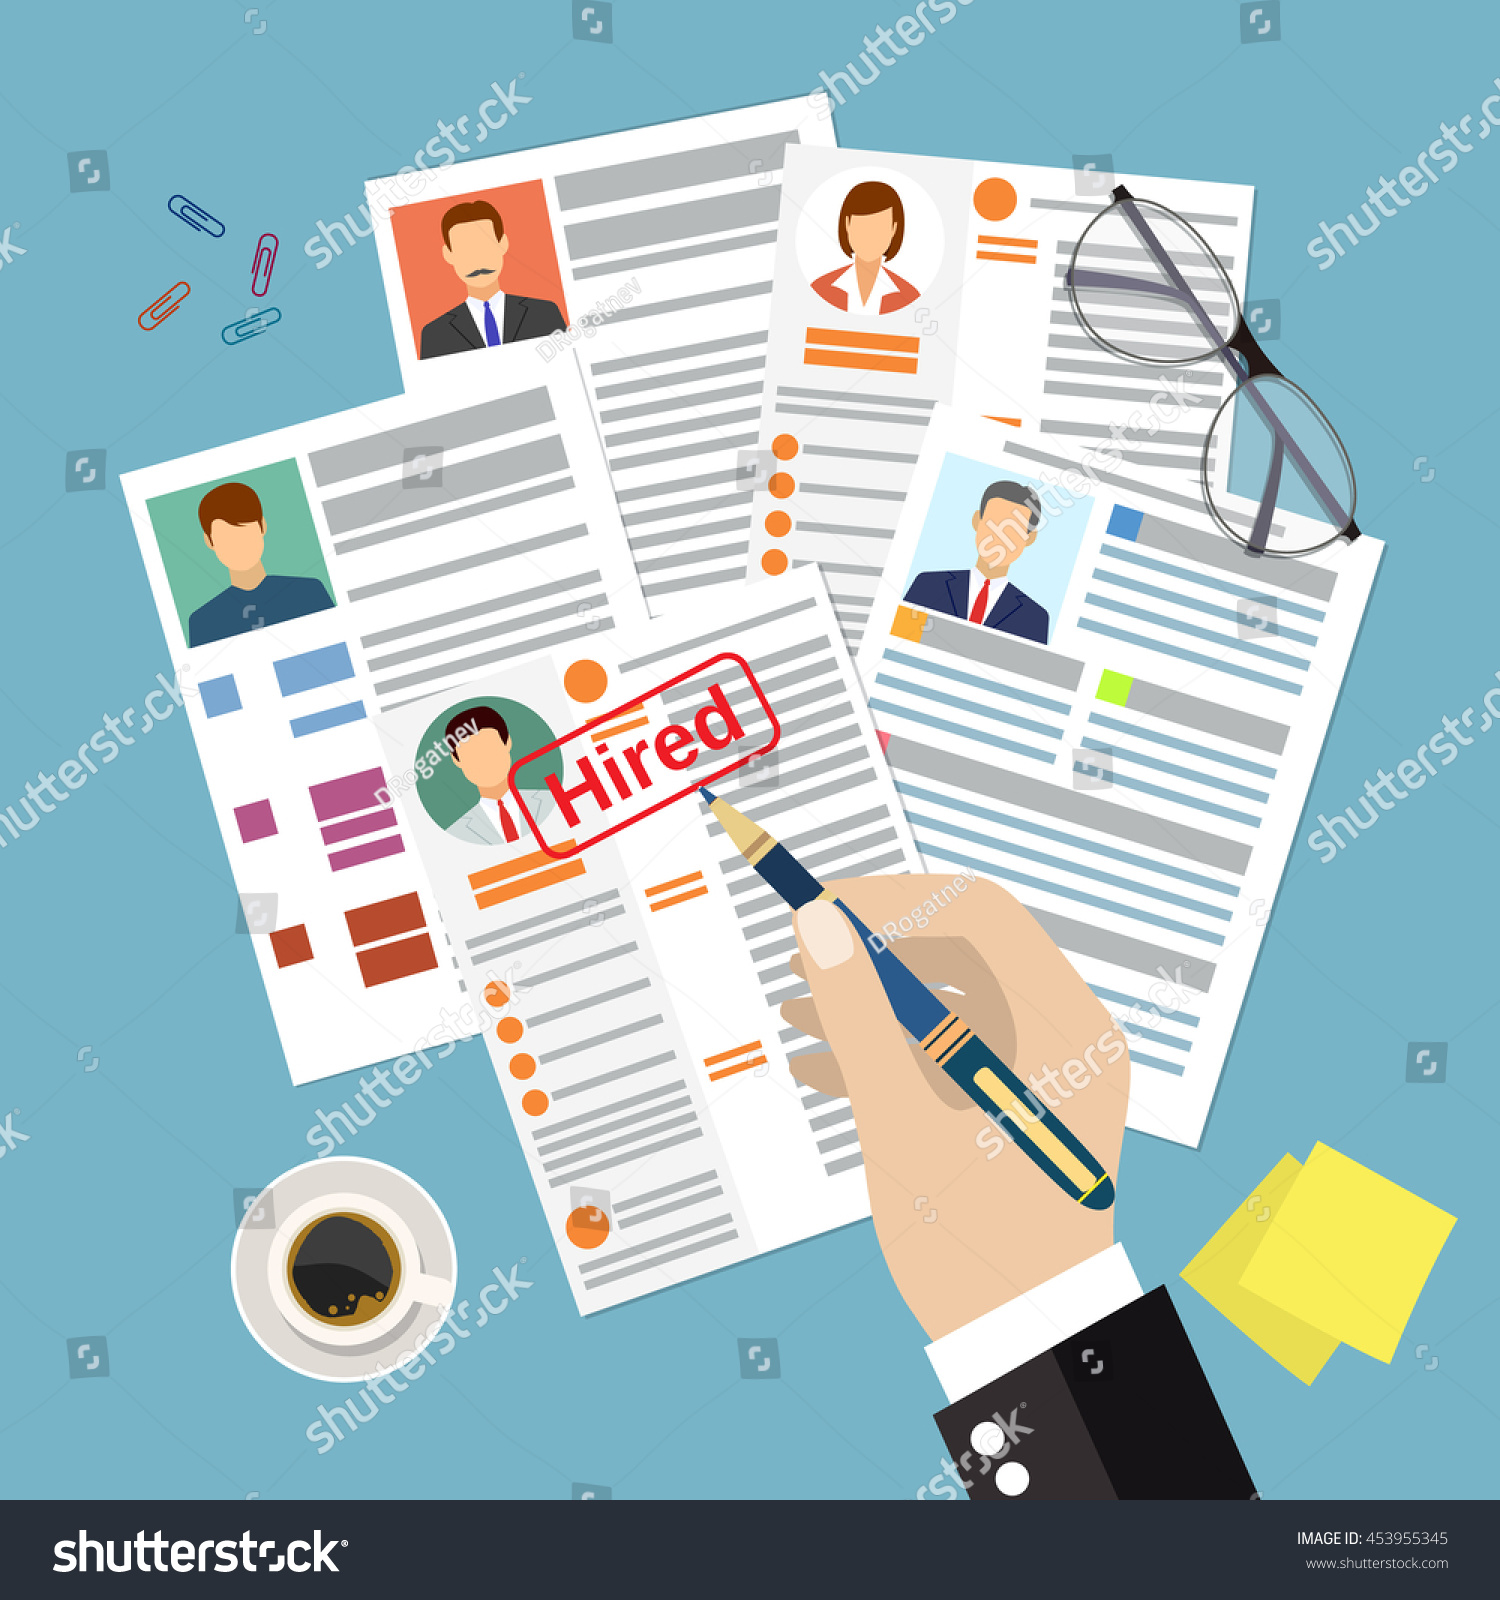 cv concept resume photo documents employment stock illustration